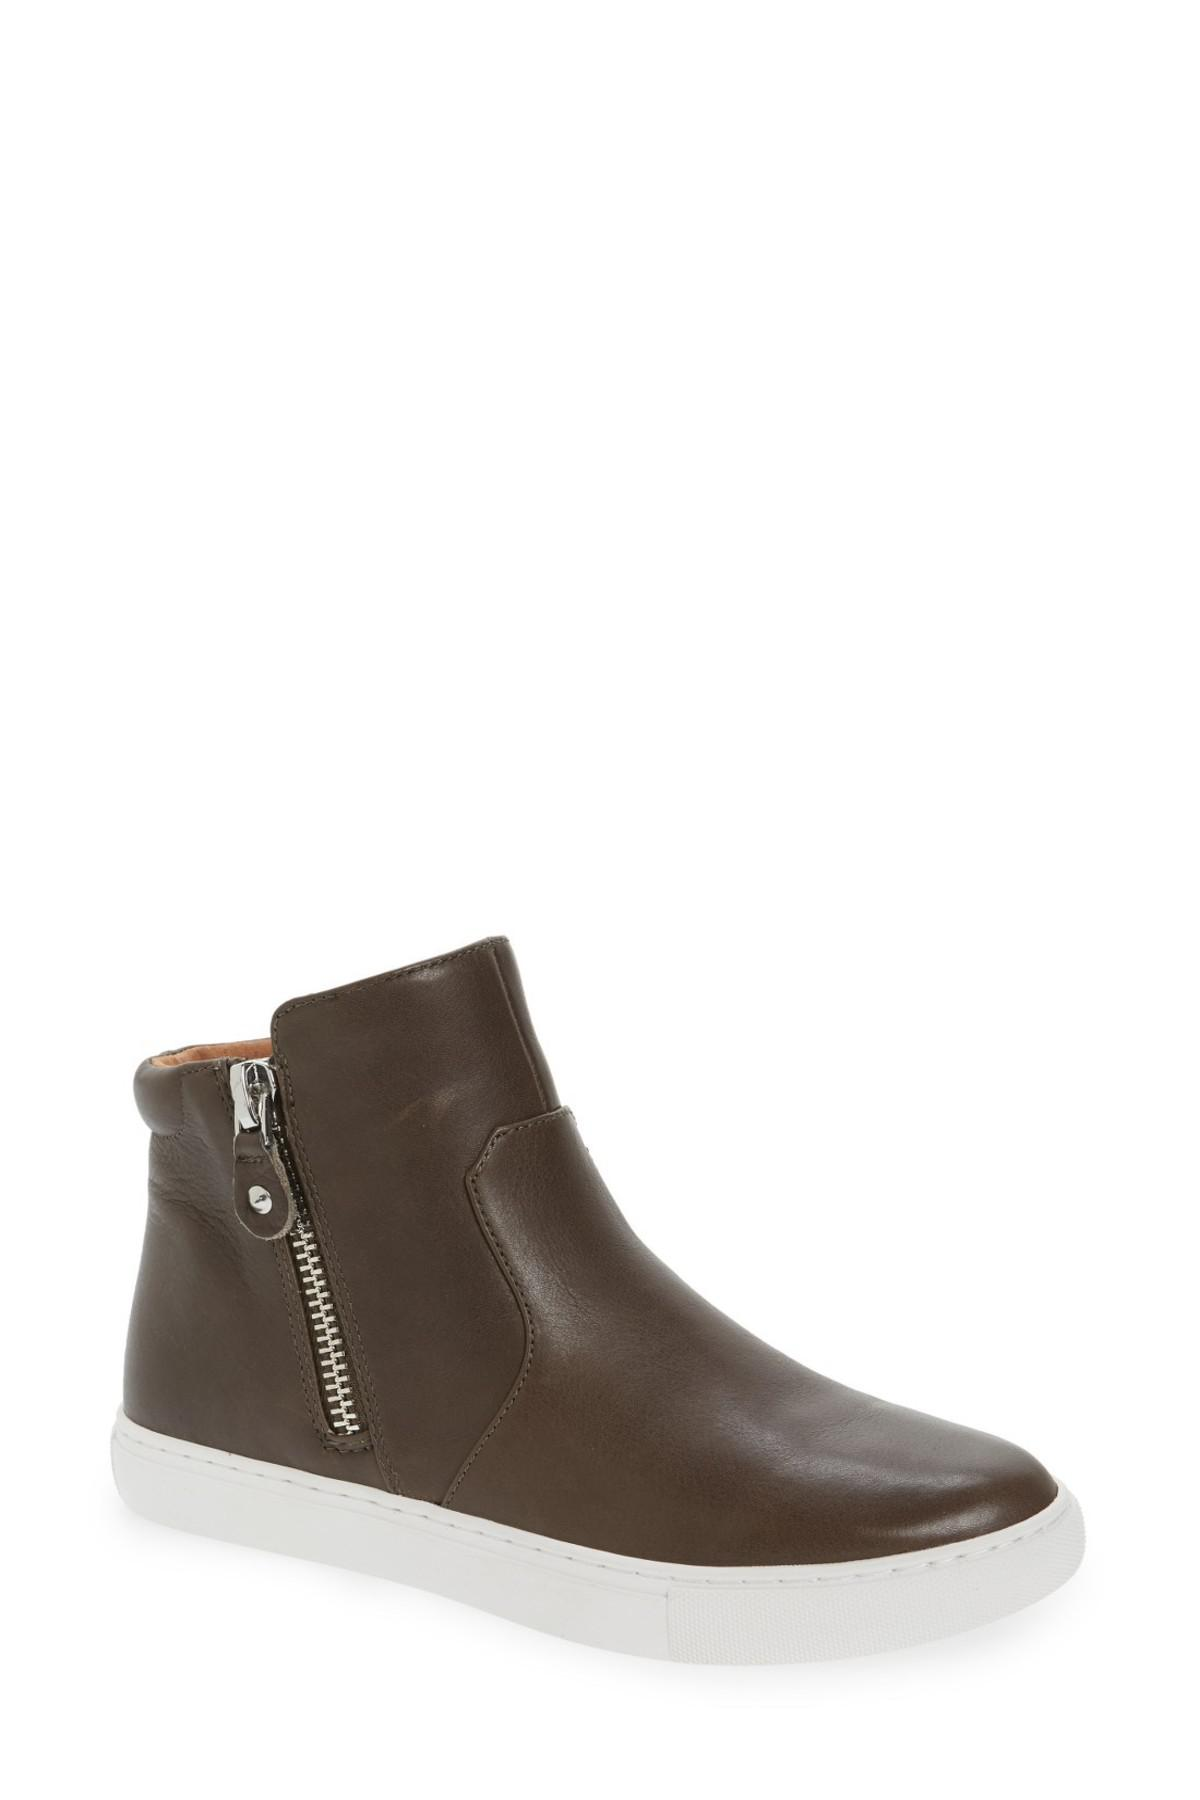 224efe67a1ca10 Lyst - Gentle Souls Carole Leather Sneakers in Brown